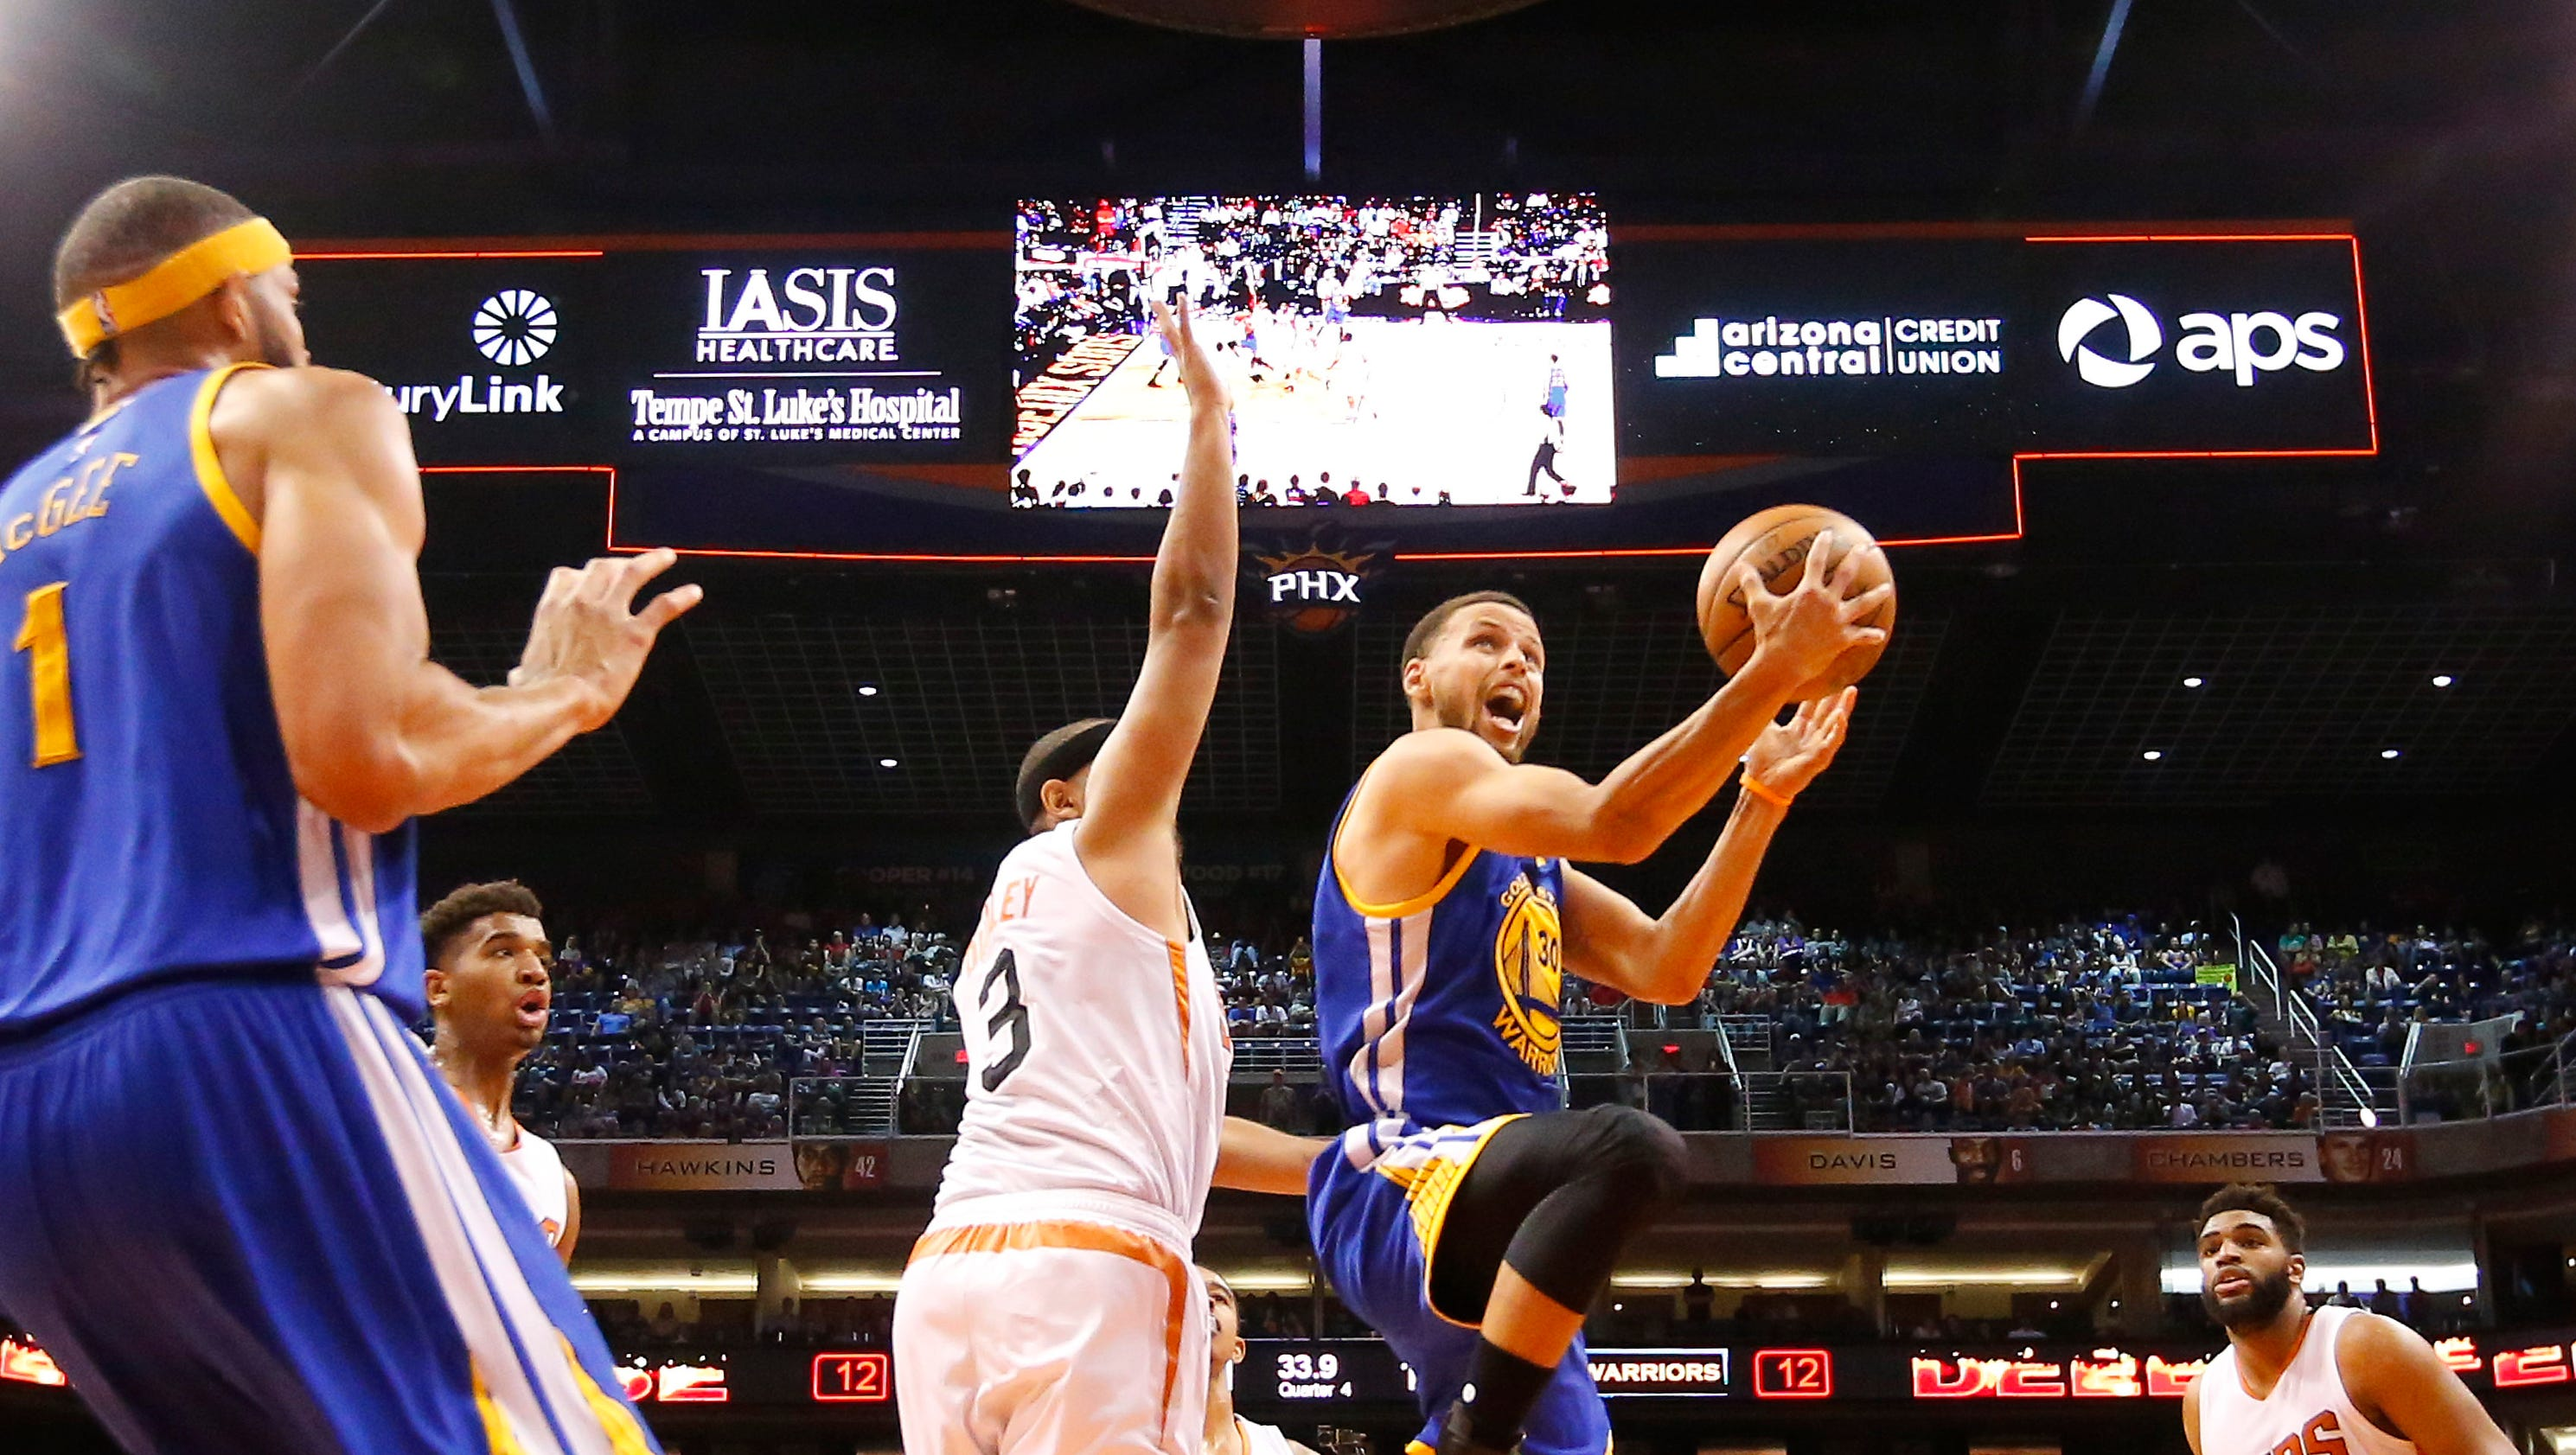 Our azcentral sports experts offer their look at the Suns and the way the playoffs will unfold.